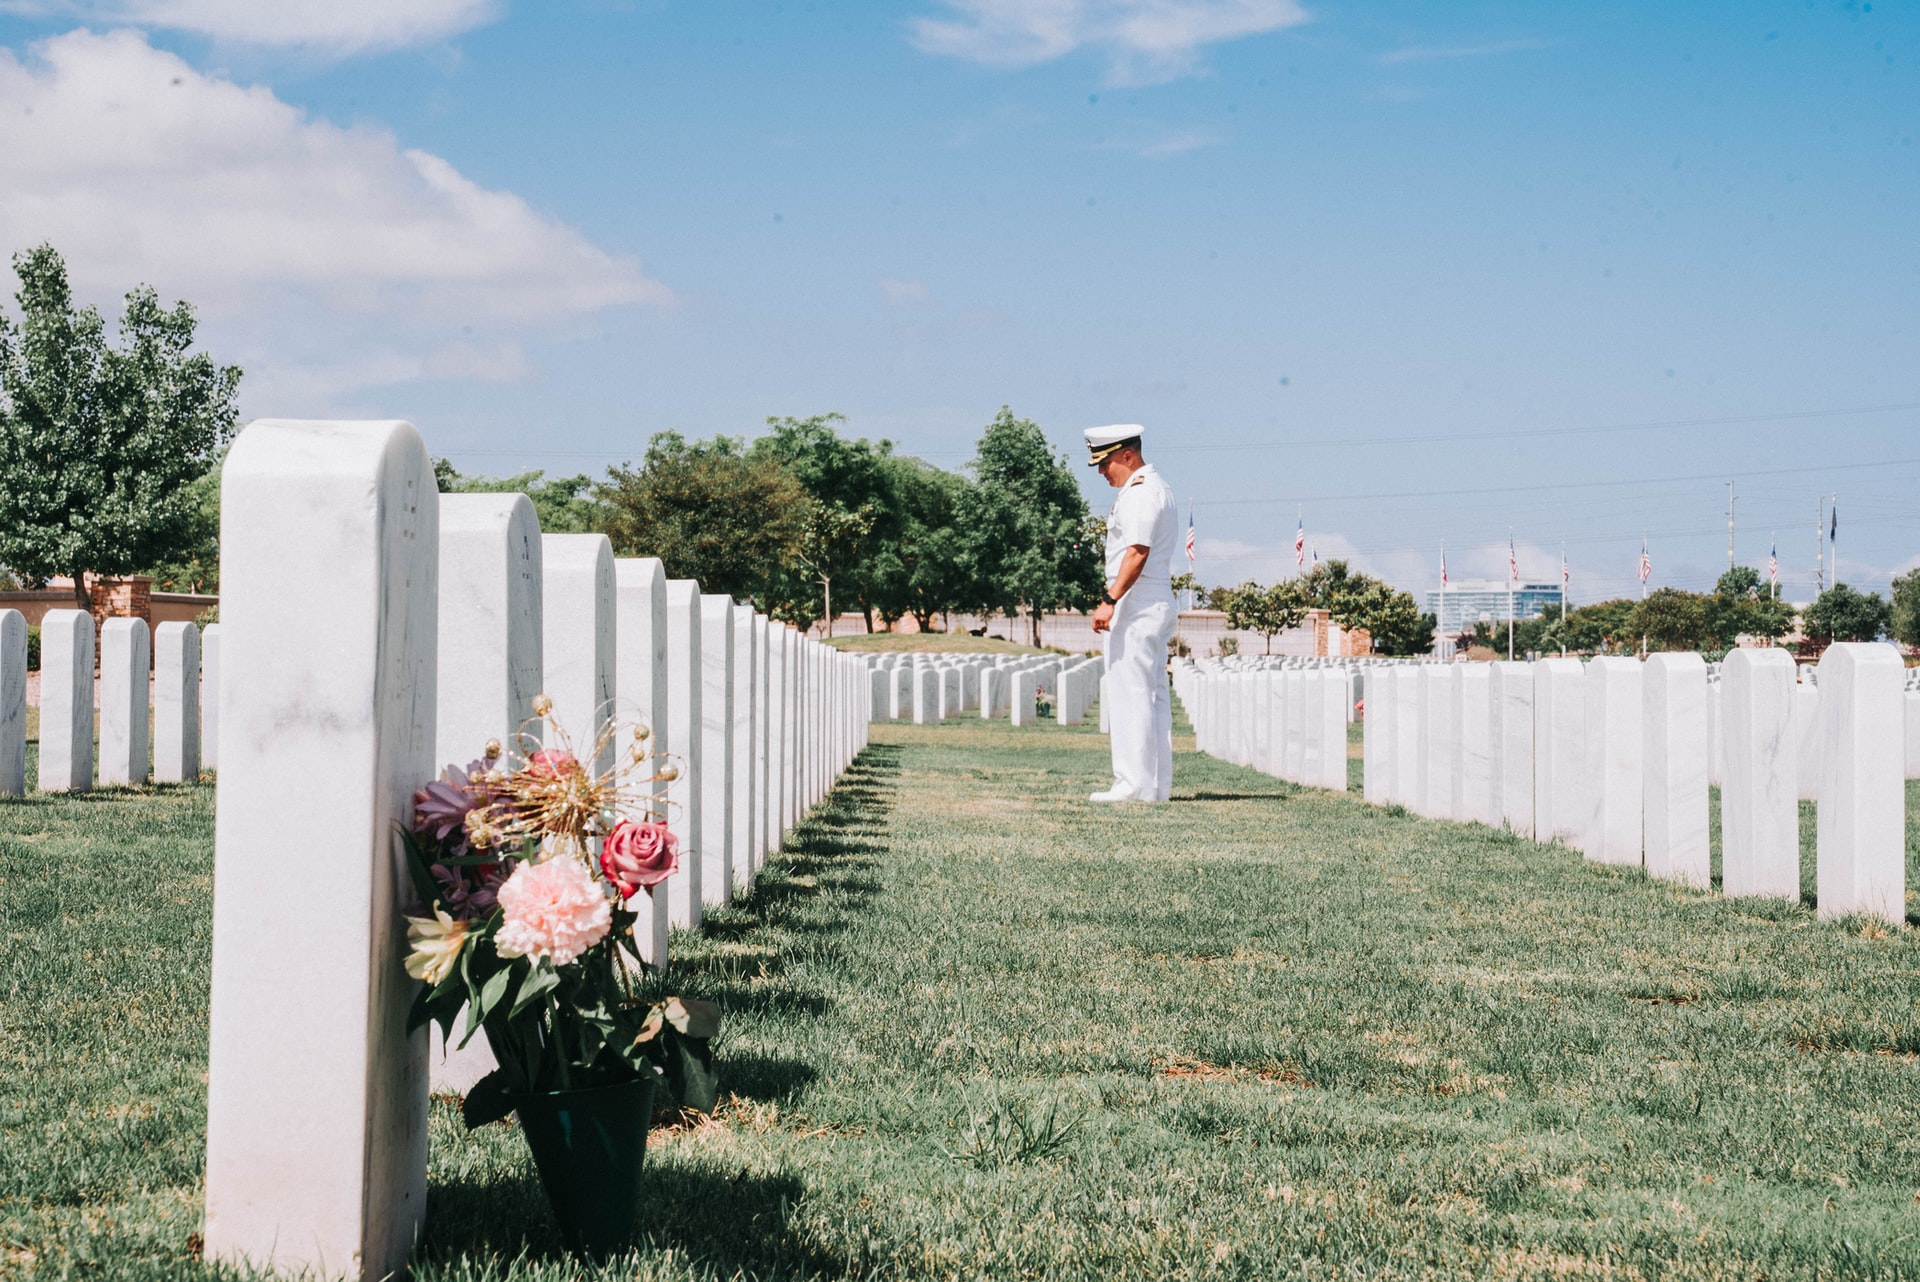 A soldier in dress whites stands among tombstones.